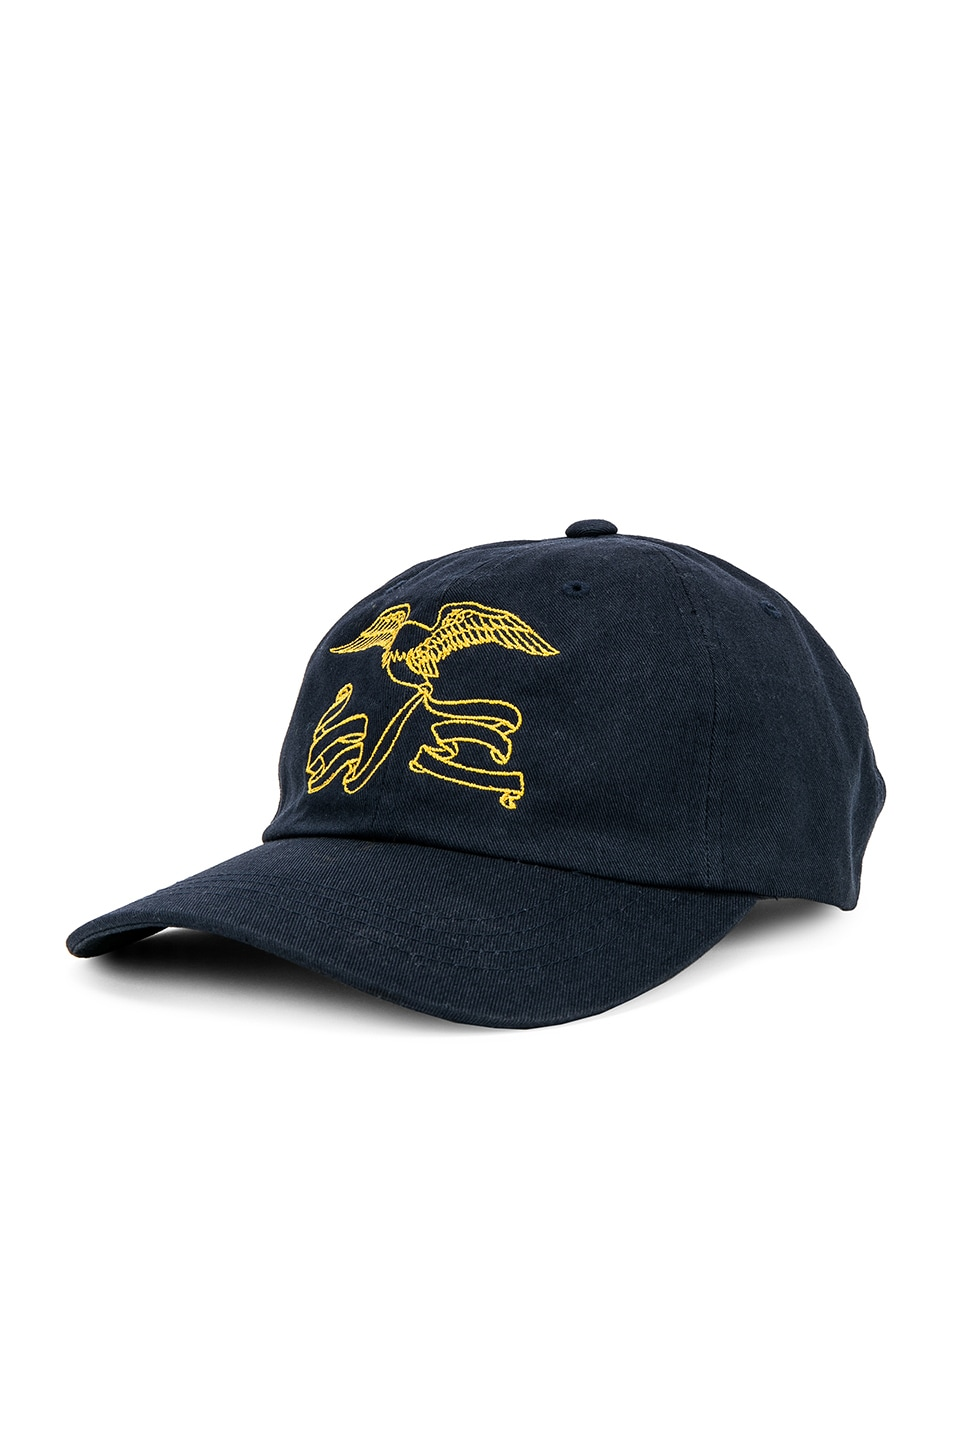 Image 2 of Reese Cooper Awoi Eagle Cap in Navy & Yellow